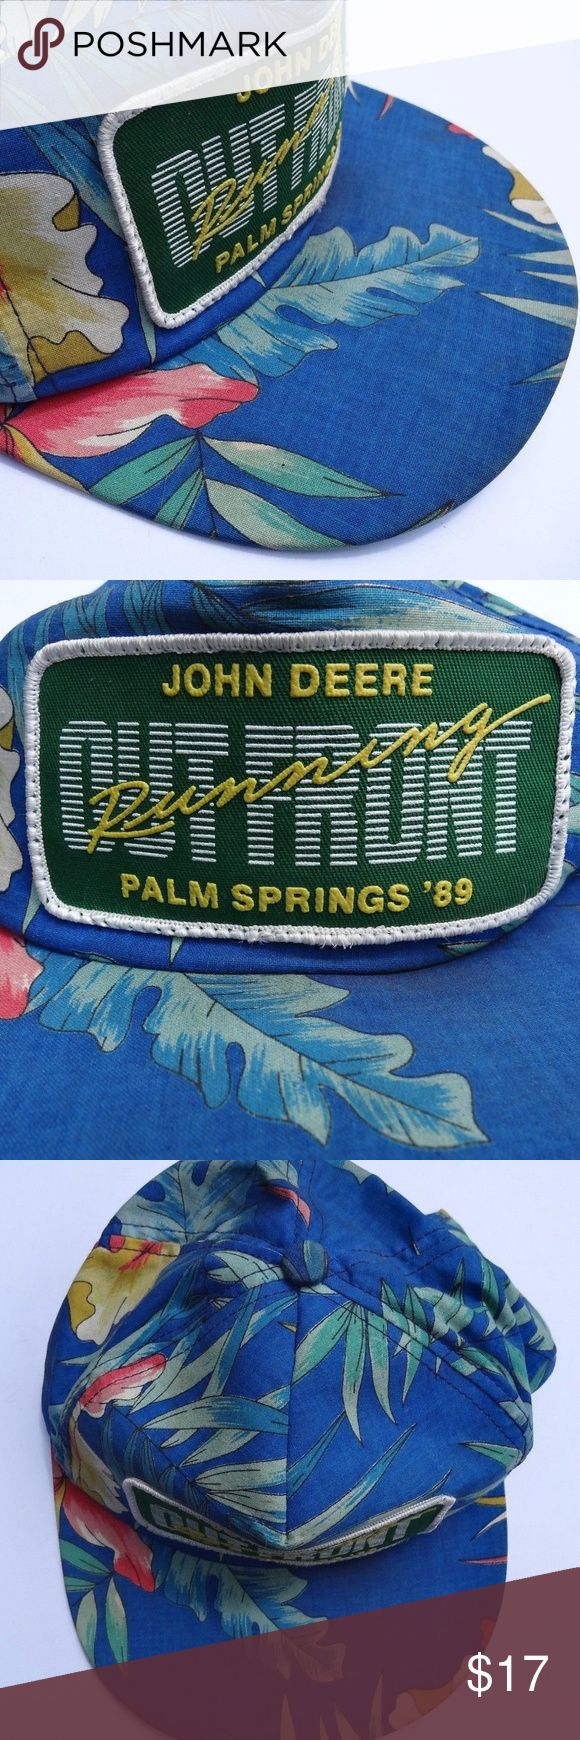 VINTAGE John Deere Baseball Hat Floral Retro Vintage, authentic John Deere tropical printed hat from a John Deere dealer meeting in Palm Springs in 1989. The plastic strap on the back is broken off. A bit dusty and worn, the plastic snapback band is completely broken off. John Deere Accessories Hats